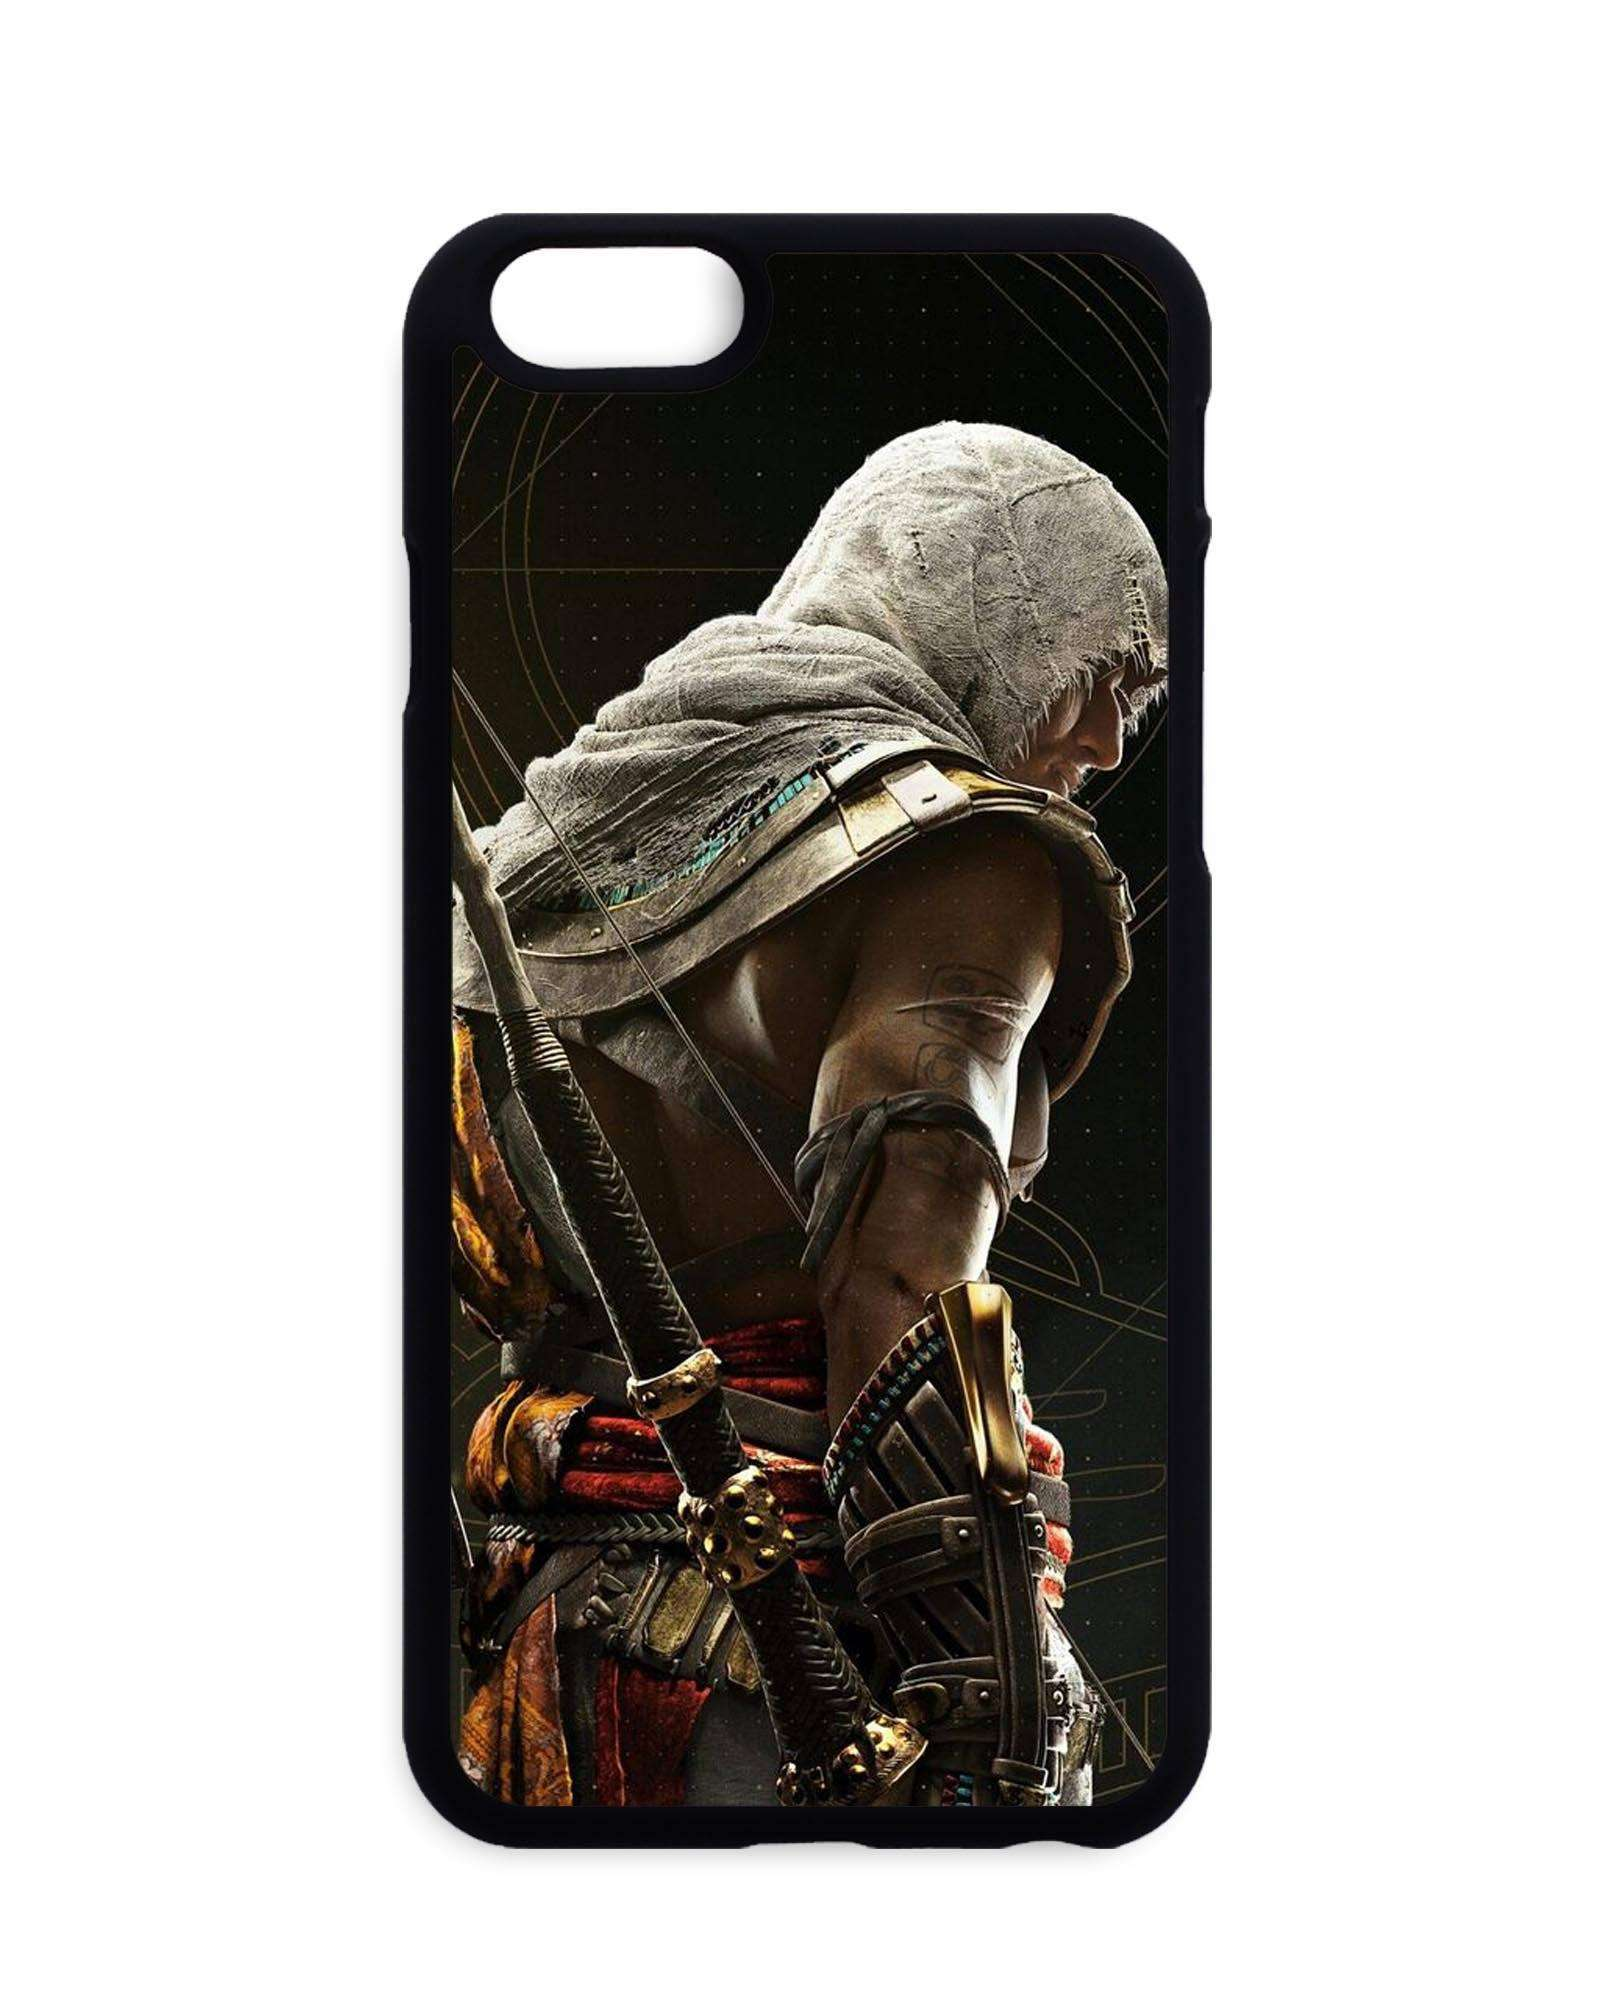 Coques - Coque Assasin's Creed Thief